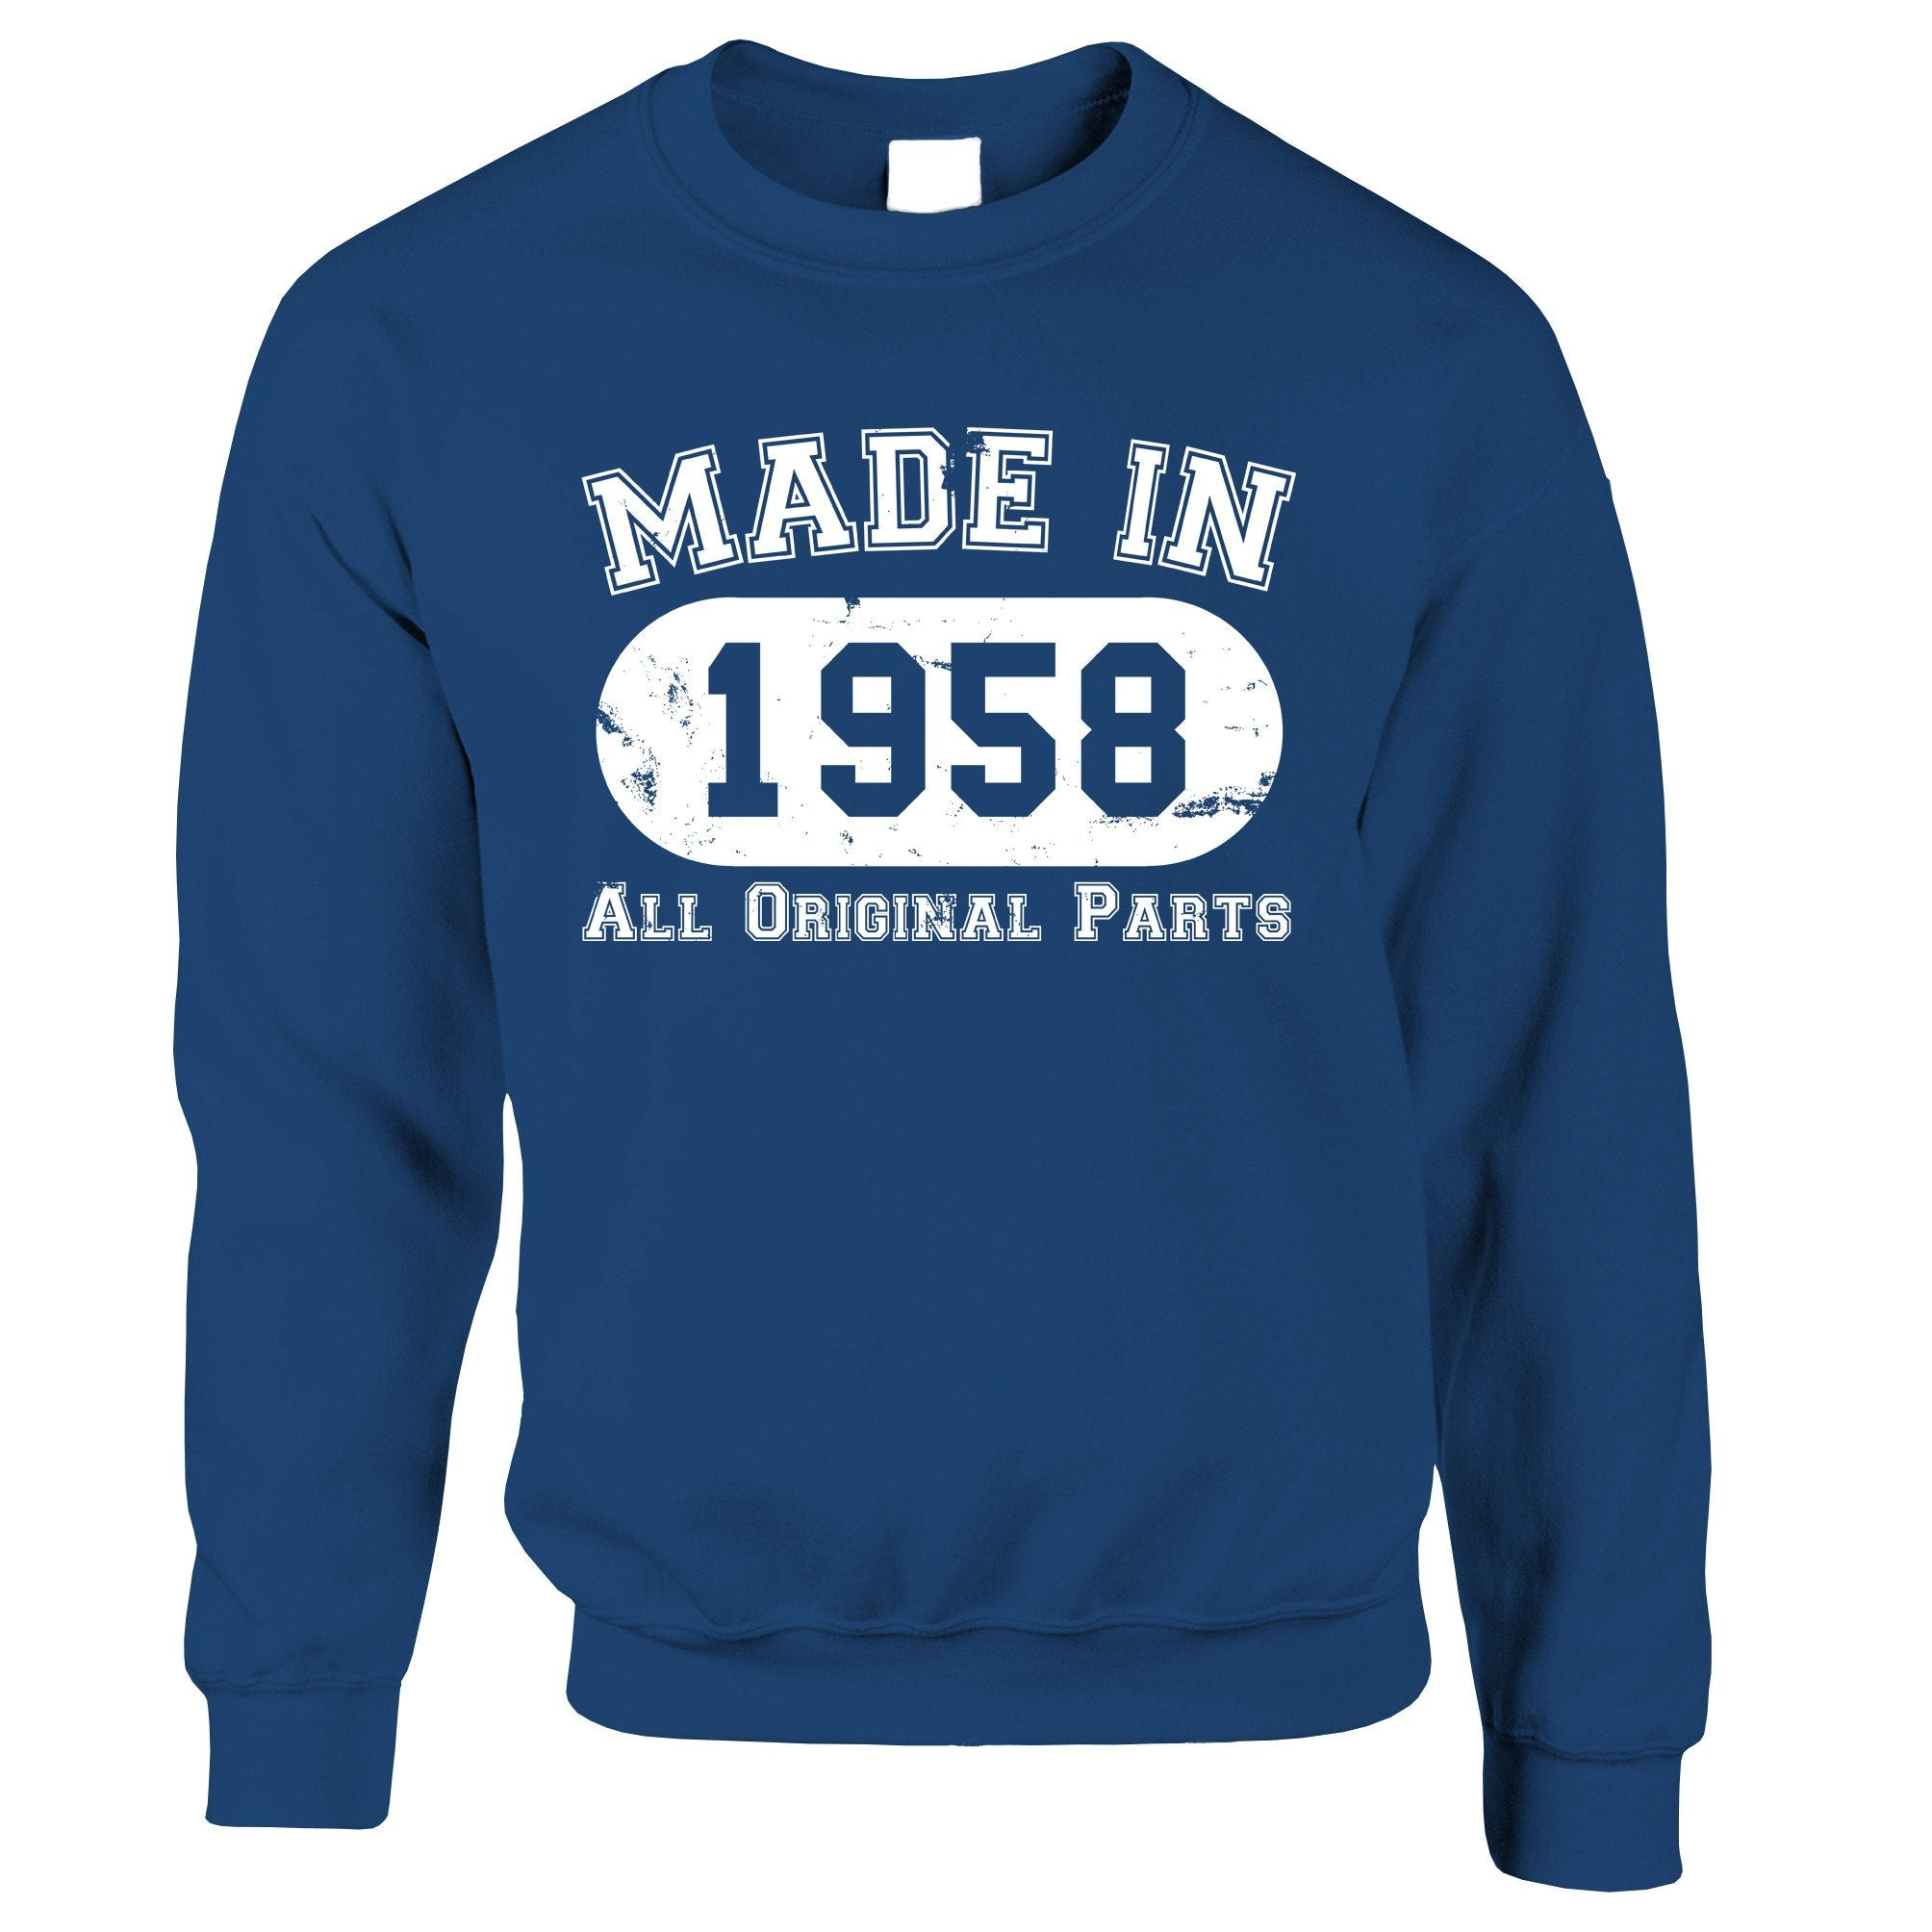 Made in 1958 All Original Parts Sweatshirt Jumper [Distressed]